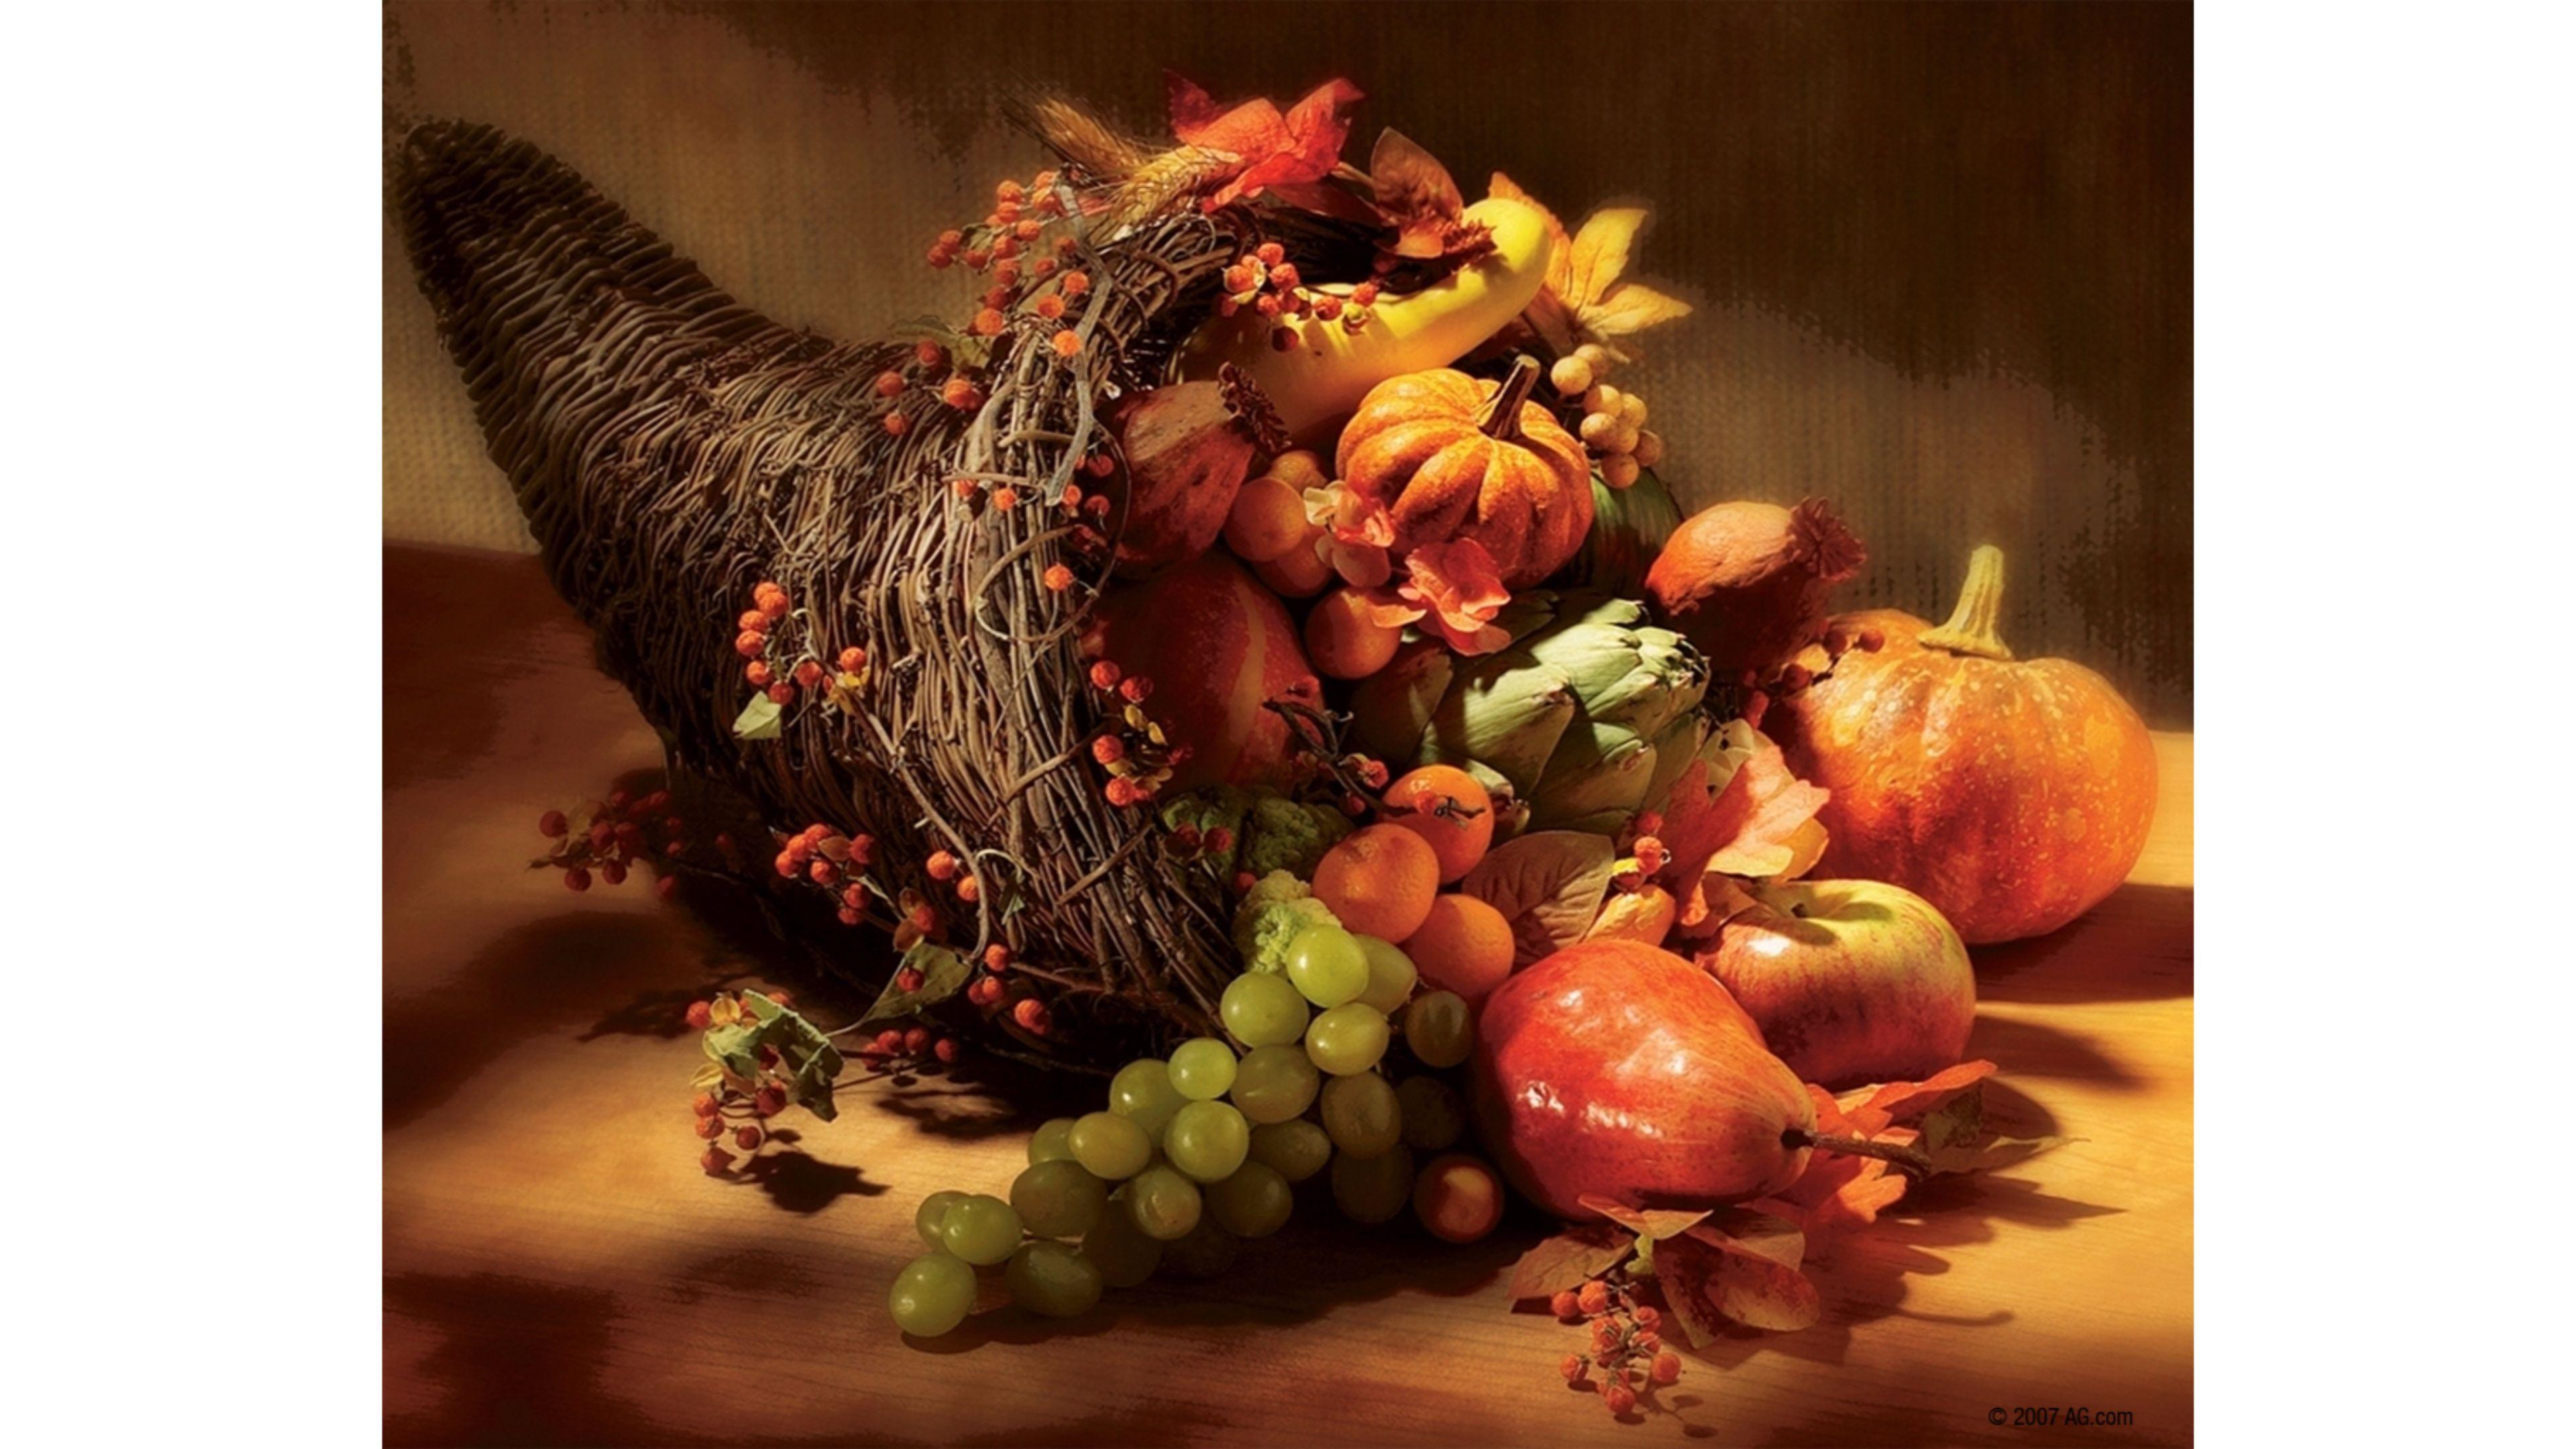 Thanksgiving 2016 Wallpapers - Wallpaper Cave